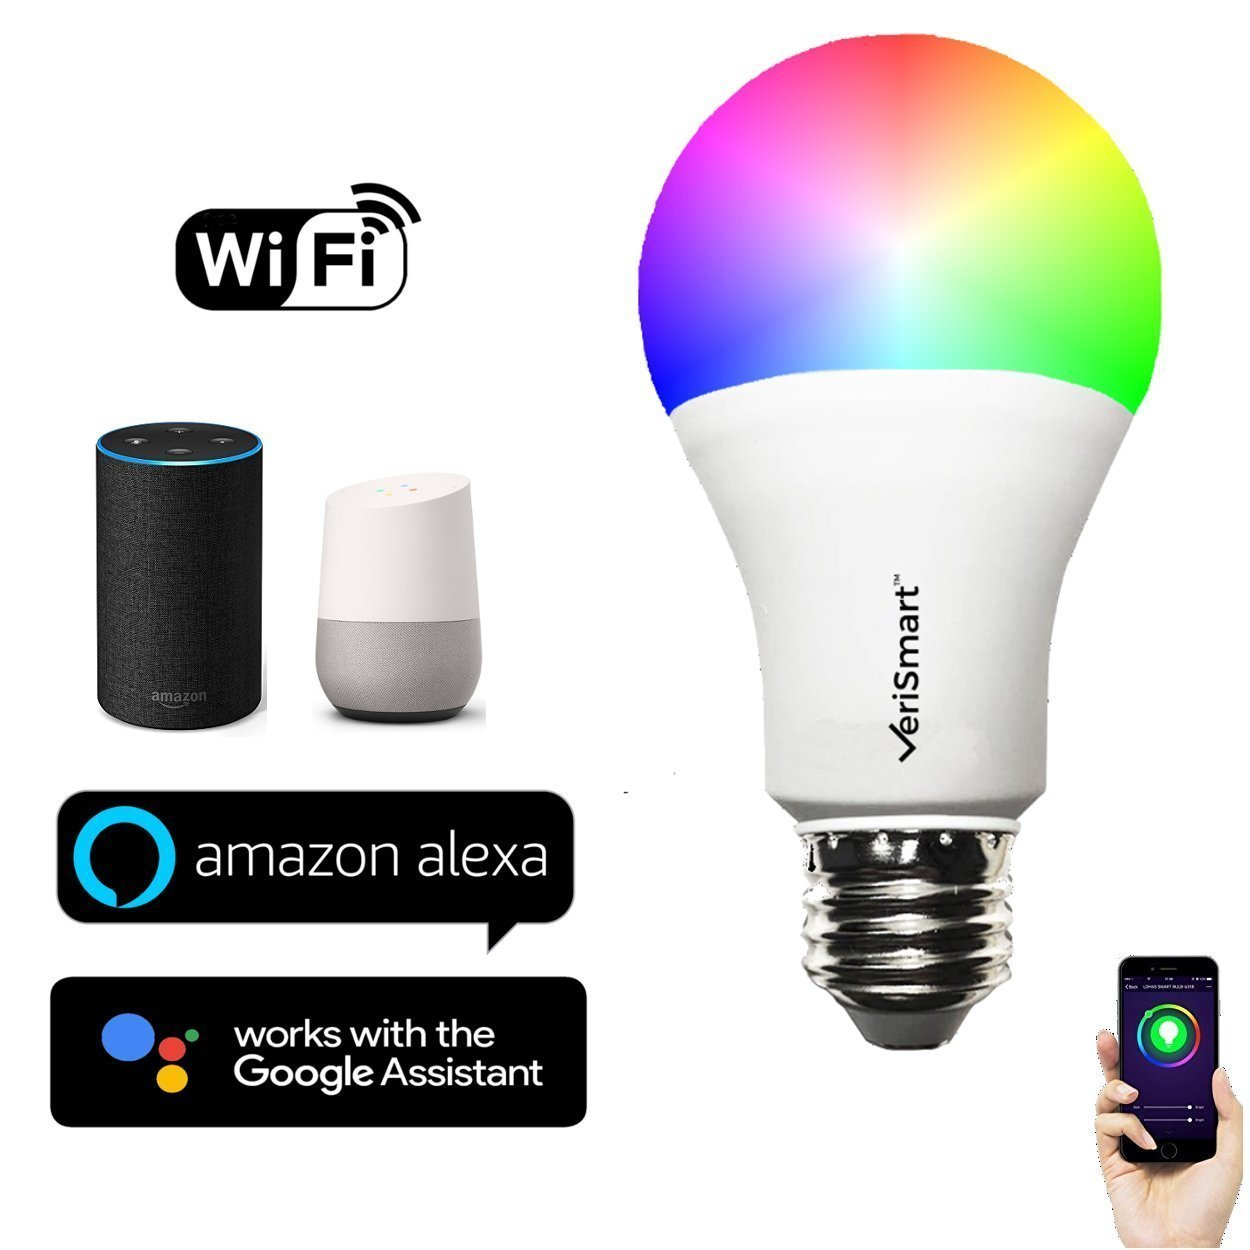 VeriSmart Wi-Fi LED Smart Light Bulb - Works with GOOGLE HOME and AMAZON ALEXA, Free APP, (7W) 60W Equivalent, 6000K, No HUB Required, CE & FCC Certified by VeriSmart (Image #1)